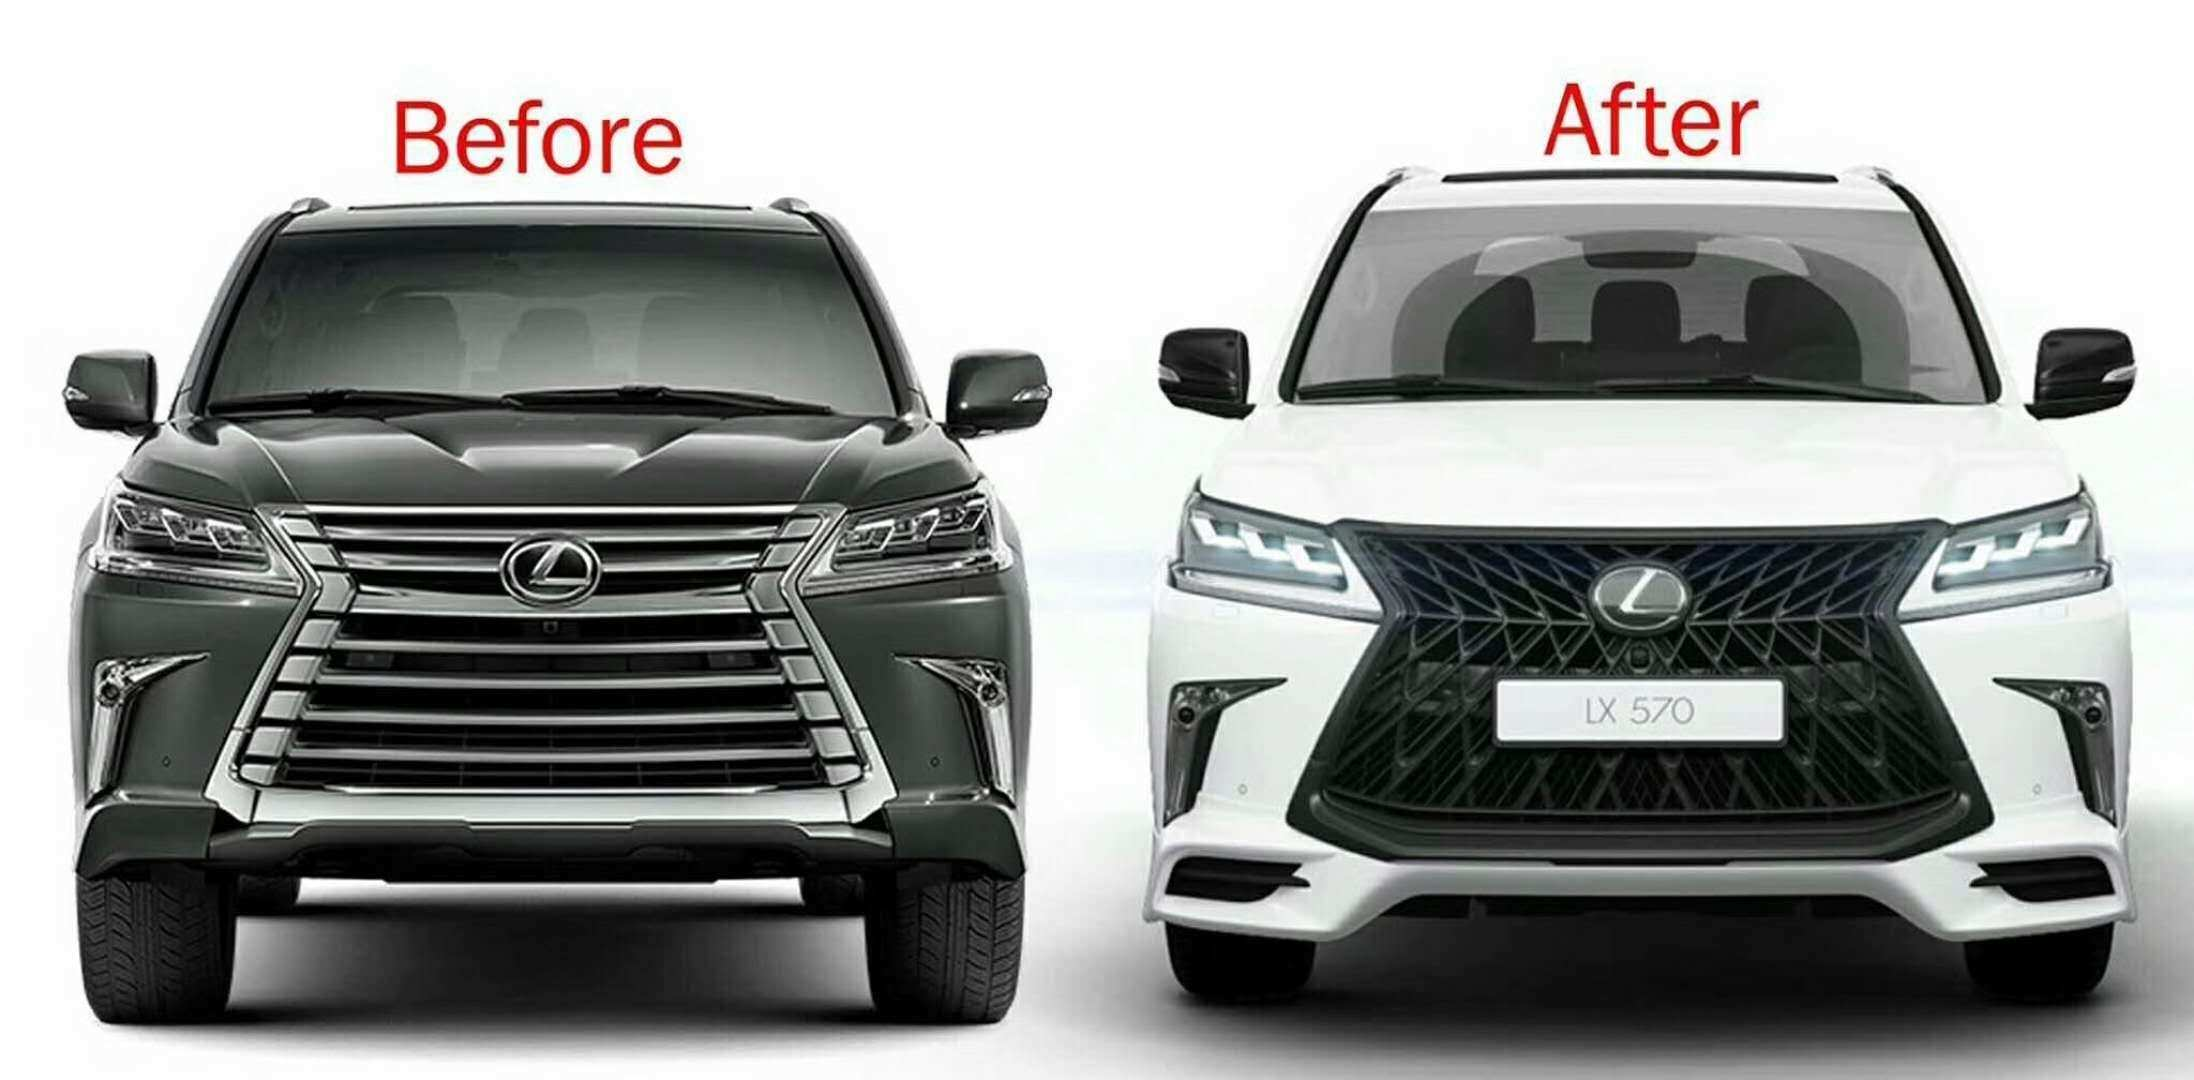 14 Great Lexus Lx 570 Black Edition 2020 Configurations by Lexus Lx 570 Black Edition 2020